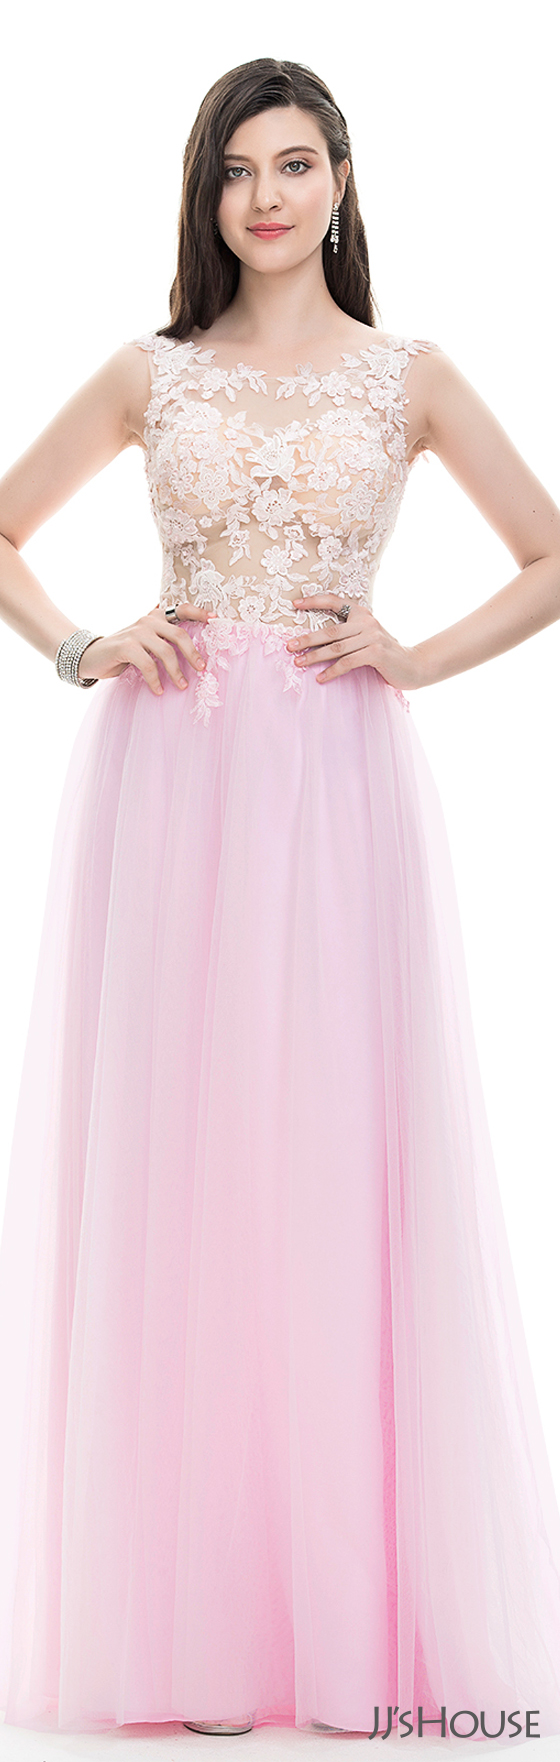 A-Line/Princess Scoop Neck Floor-Length Tulle Prom Dresses With ...